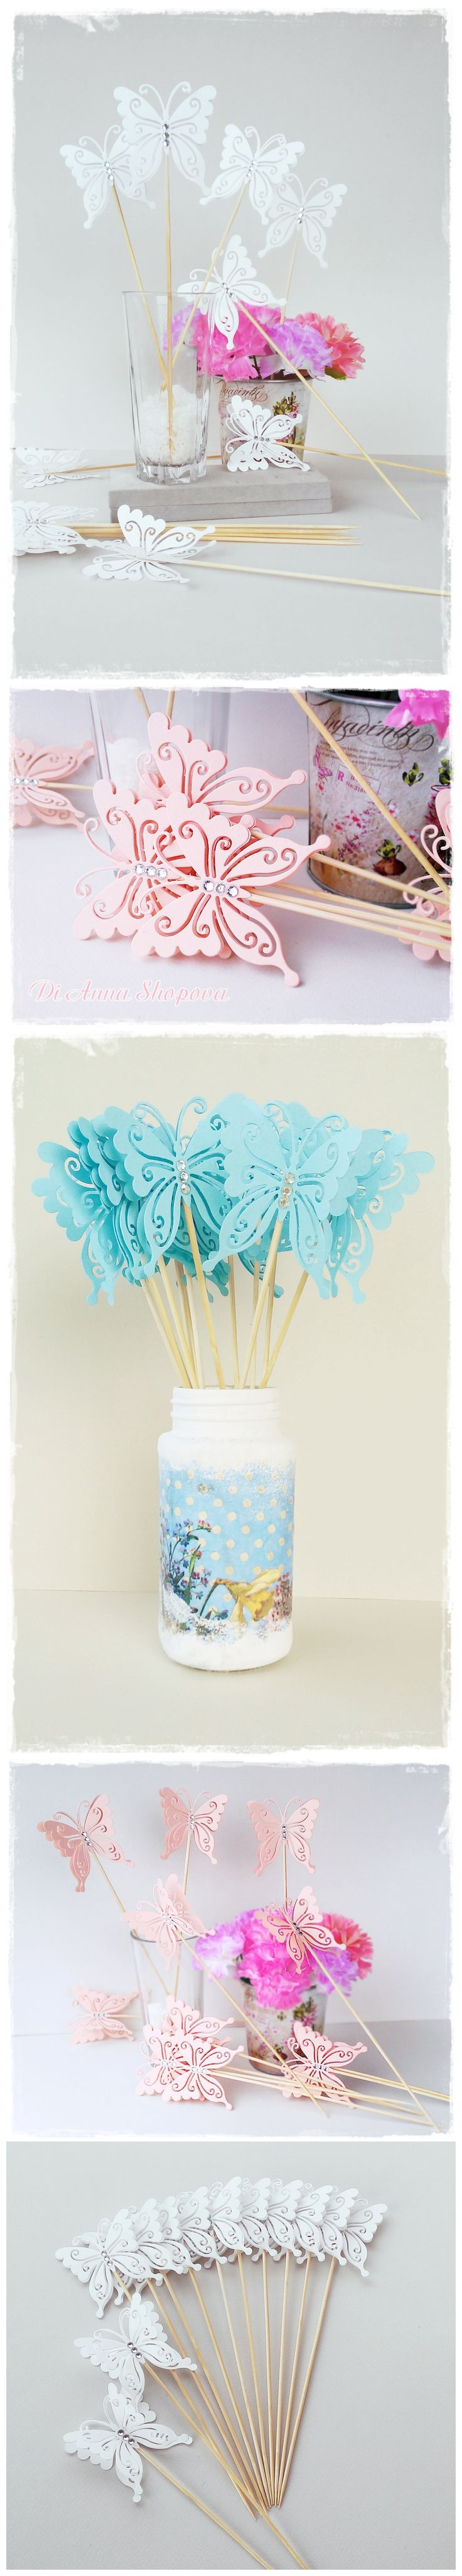 Butterfly Sticks - Table Decorations - Party Decorations - Wedding Day - Christening - Princess Party - Hens Party - Home Decor - Birthday Party - Garden Party Ideas